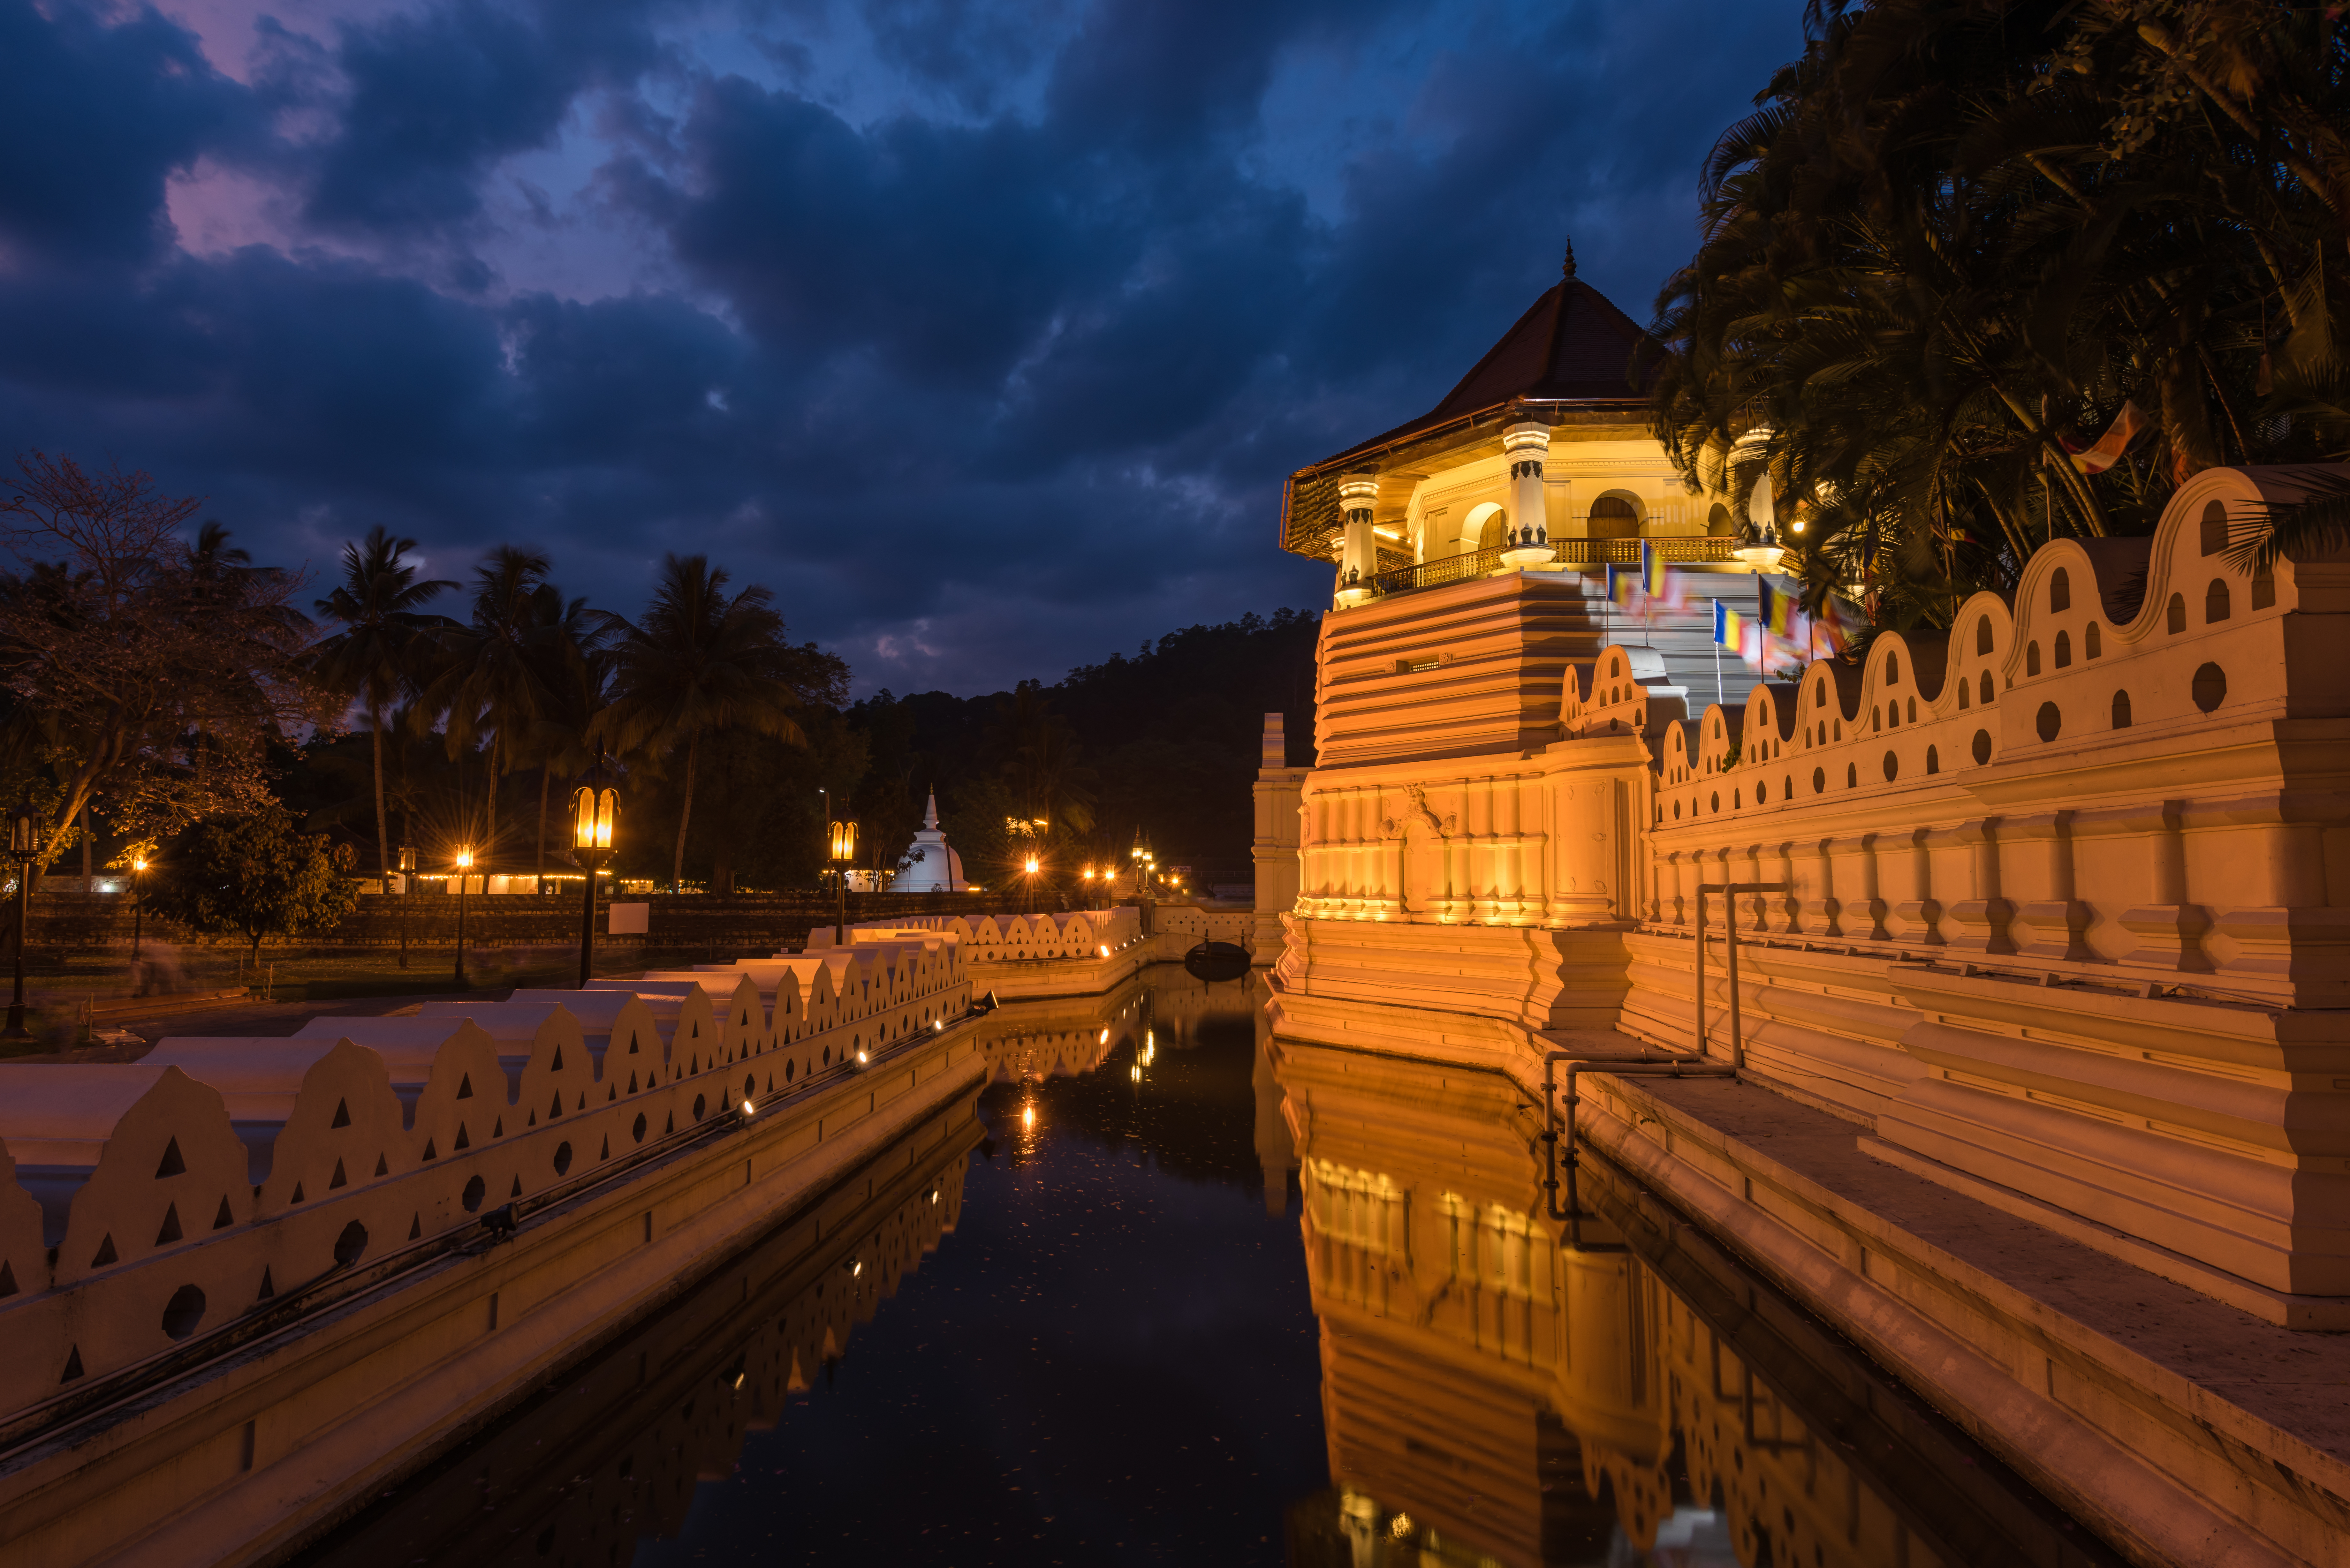 Temple of Tooth Relic, Kandy